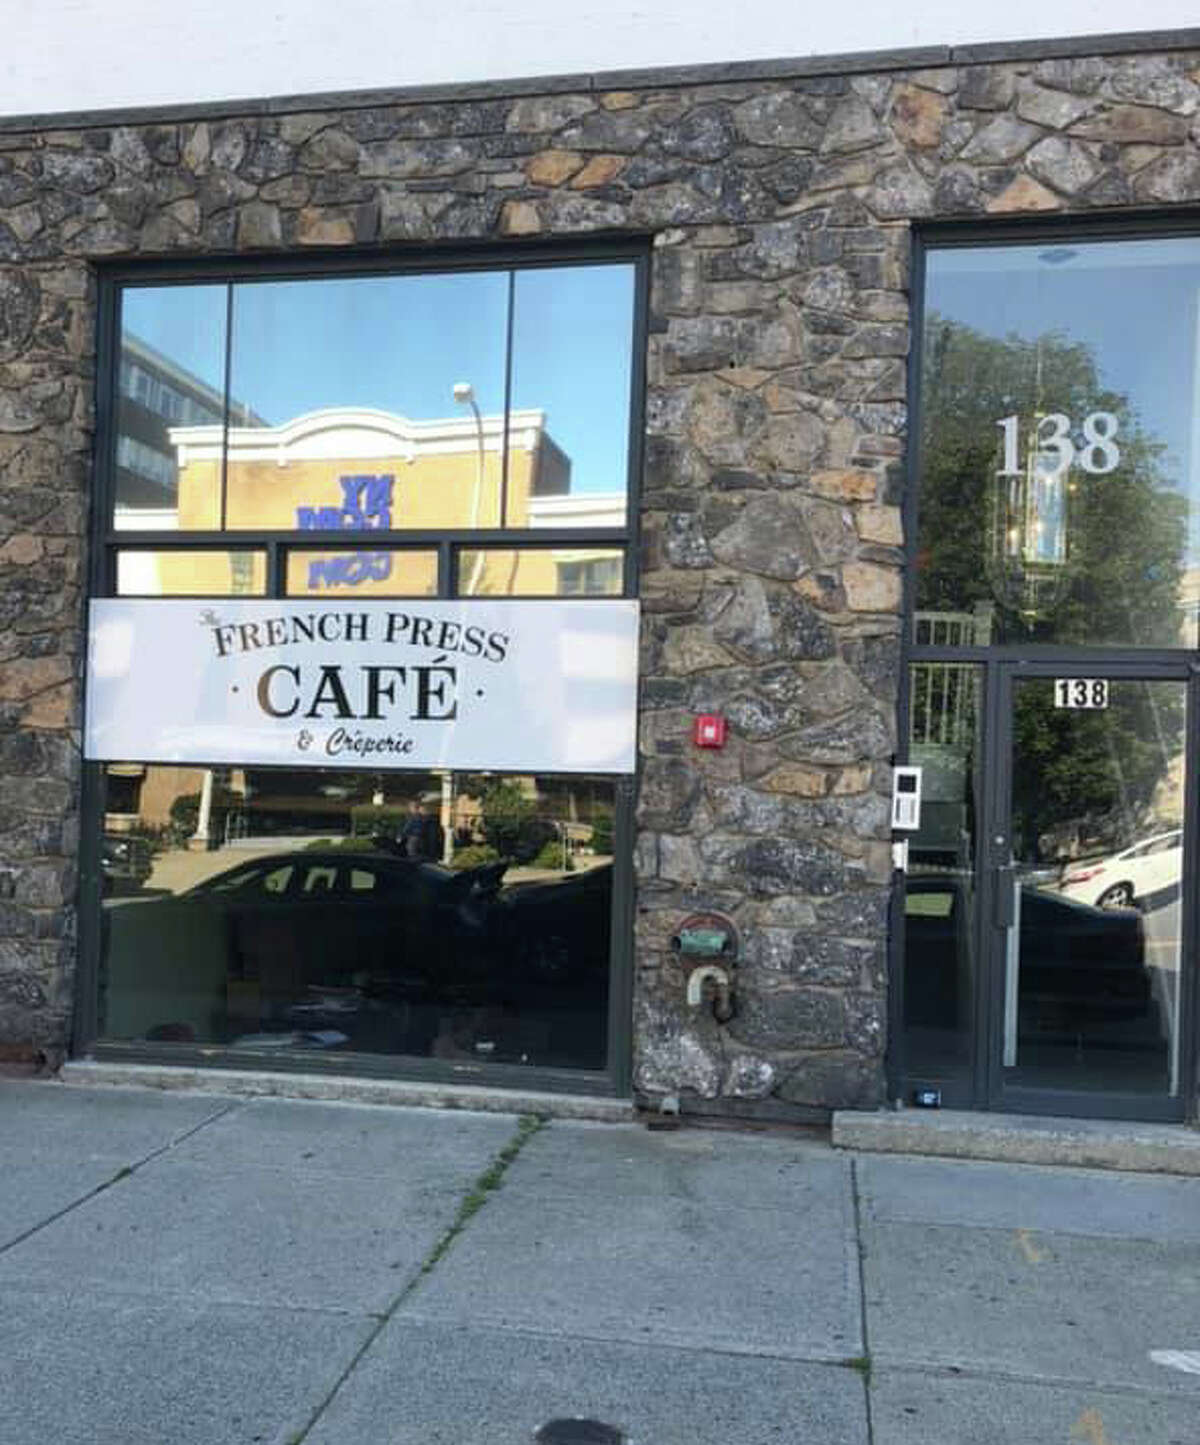 The new location of The French Press Cafe & Creperie at 138 Washington Ave. in Albany.